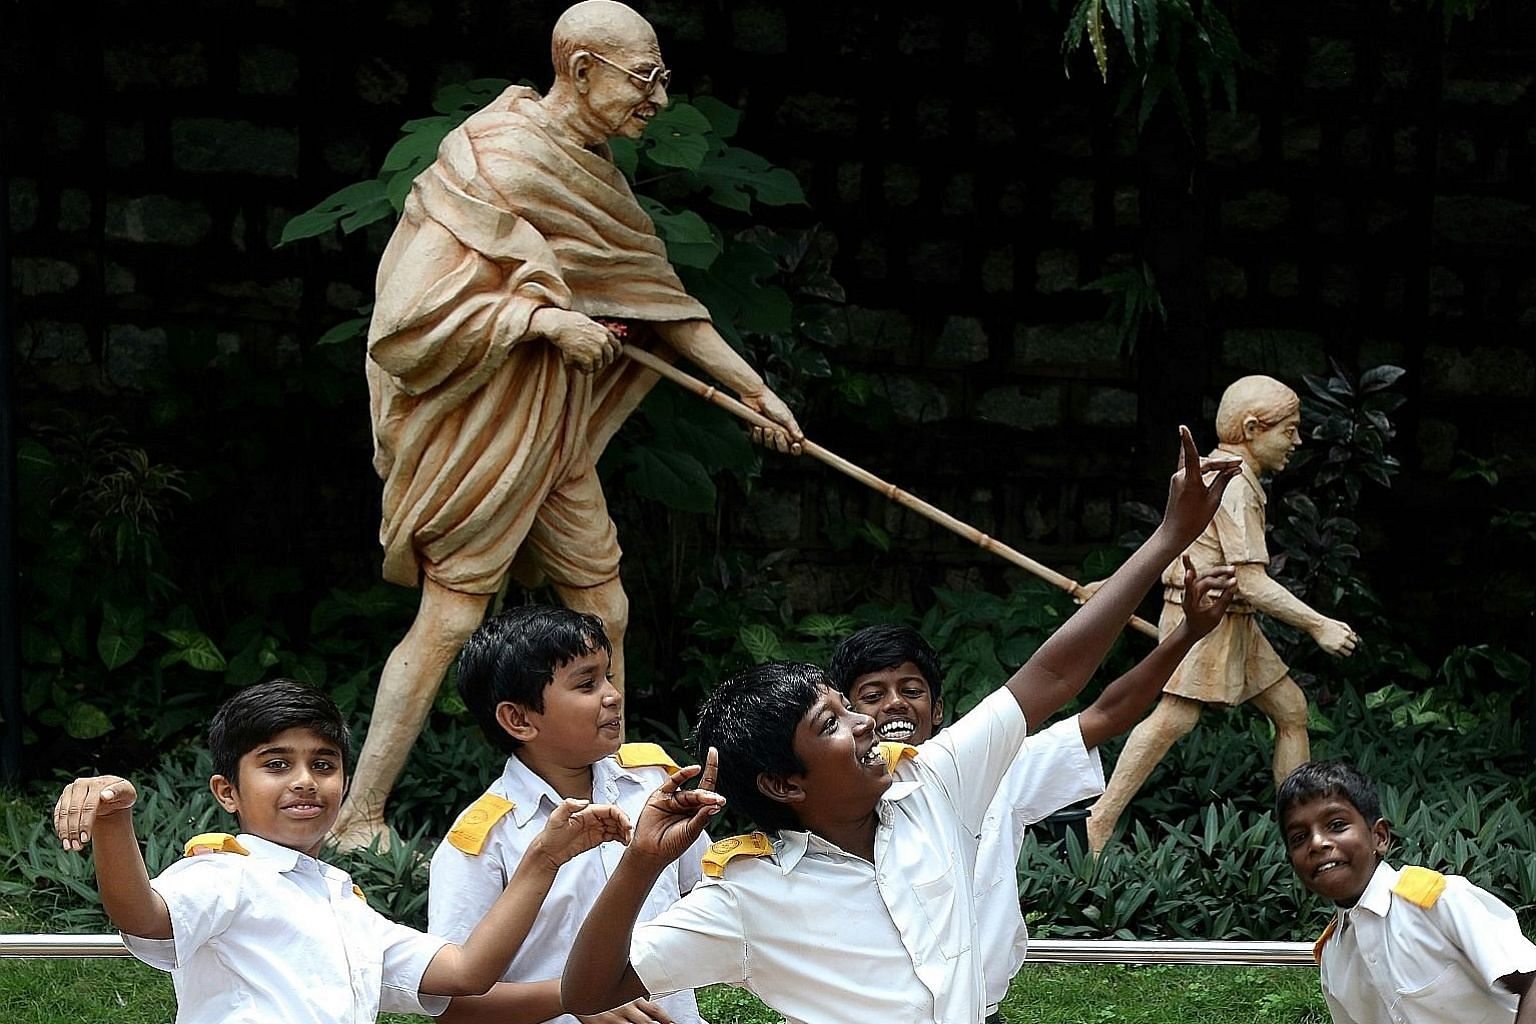 Indian students in Bangalore celebrating in front of a statue of Mahatma Gandhi on his 148th birth anniversary yesterday. Mohandas Karamchand Gandhi, also known as Bapu or Father of the Nation, was born on Oct 2, 1869, in Porbandar, Gujarat. He studi